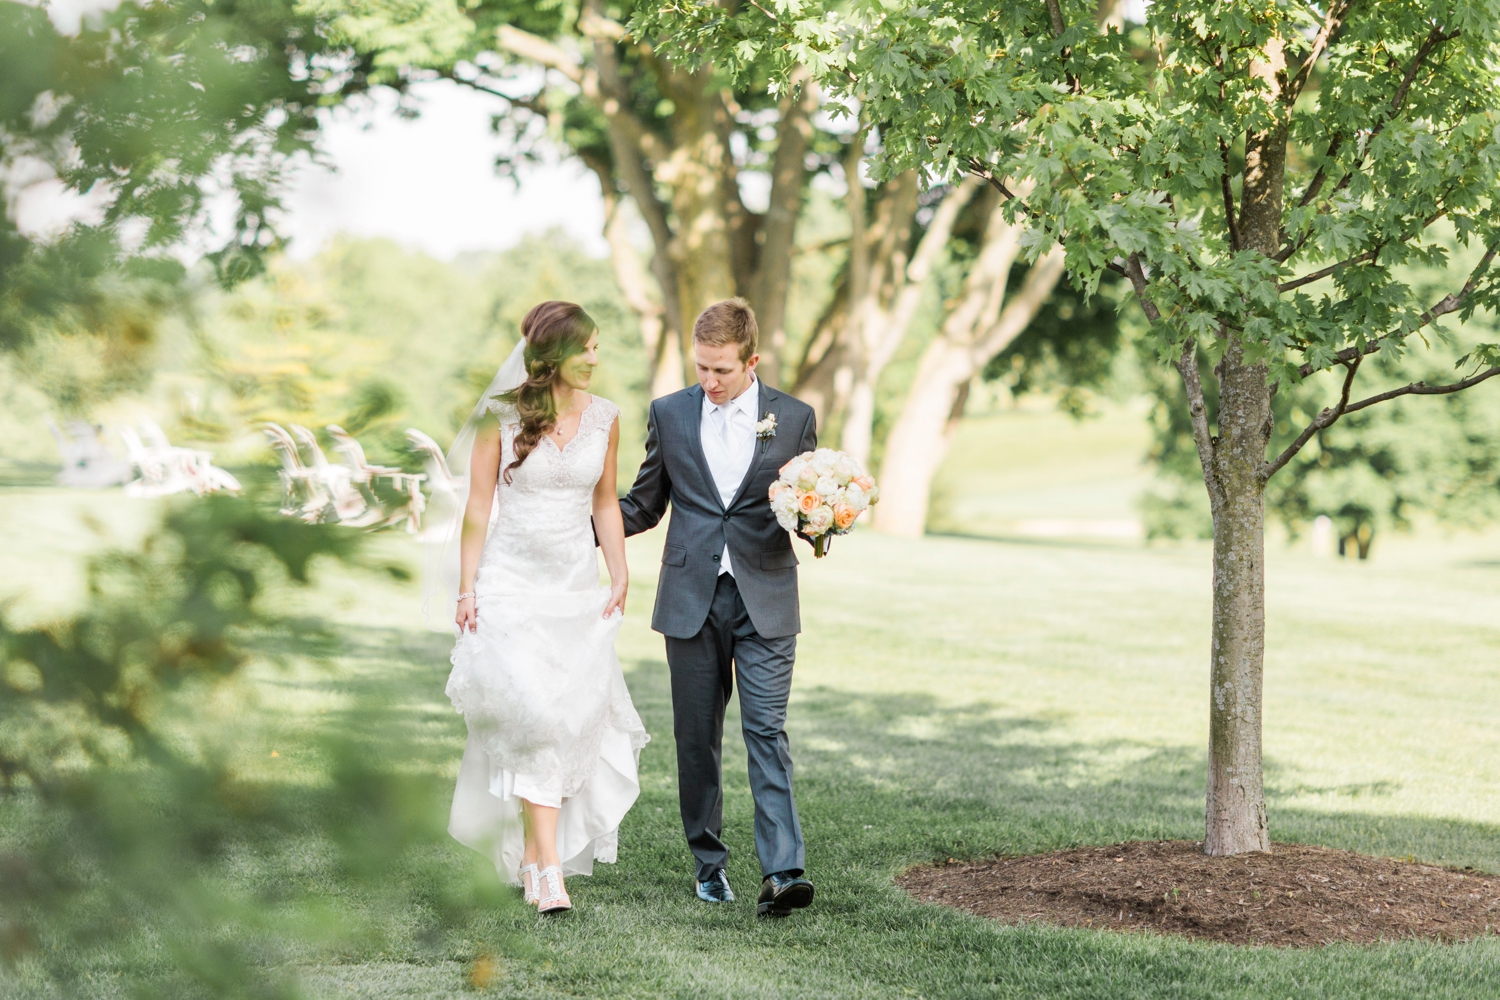 NCR_Country_Club_Kettering_Ohio_Wedding_Photography_Chloe_Luka_Photography_7166.jpg